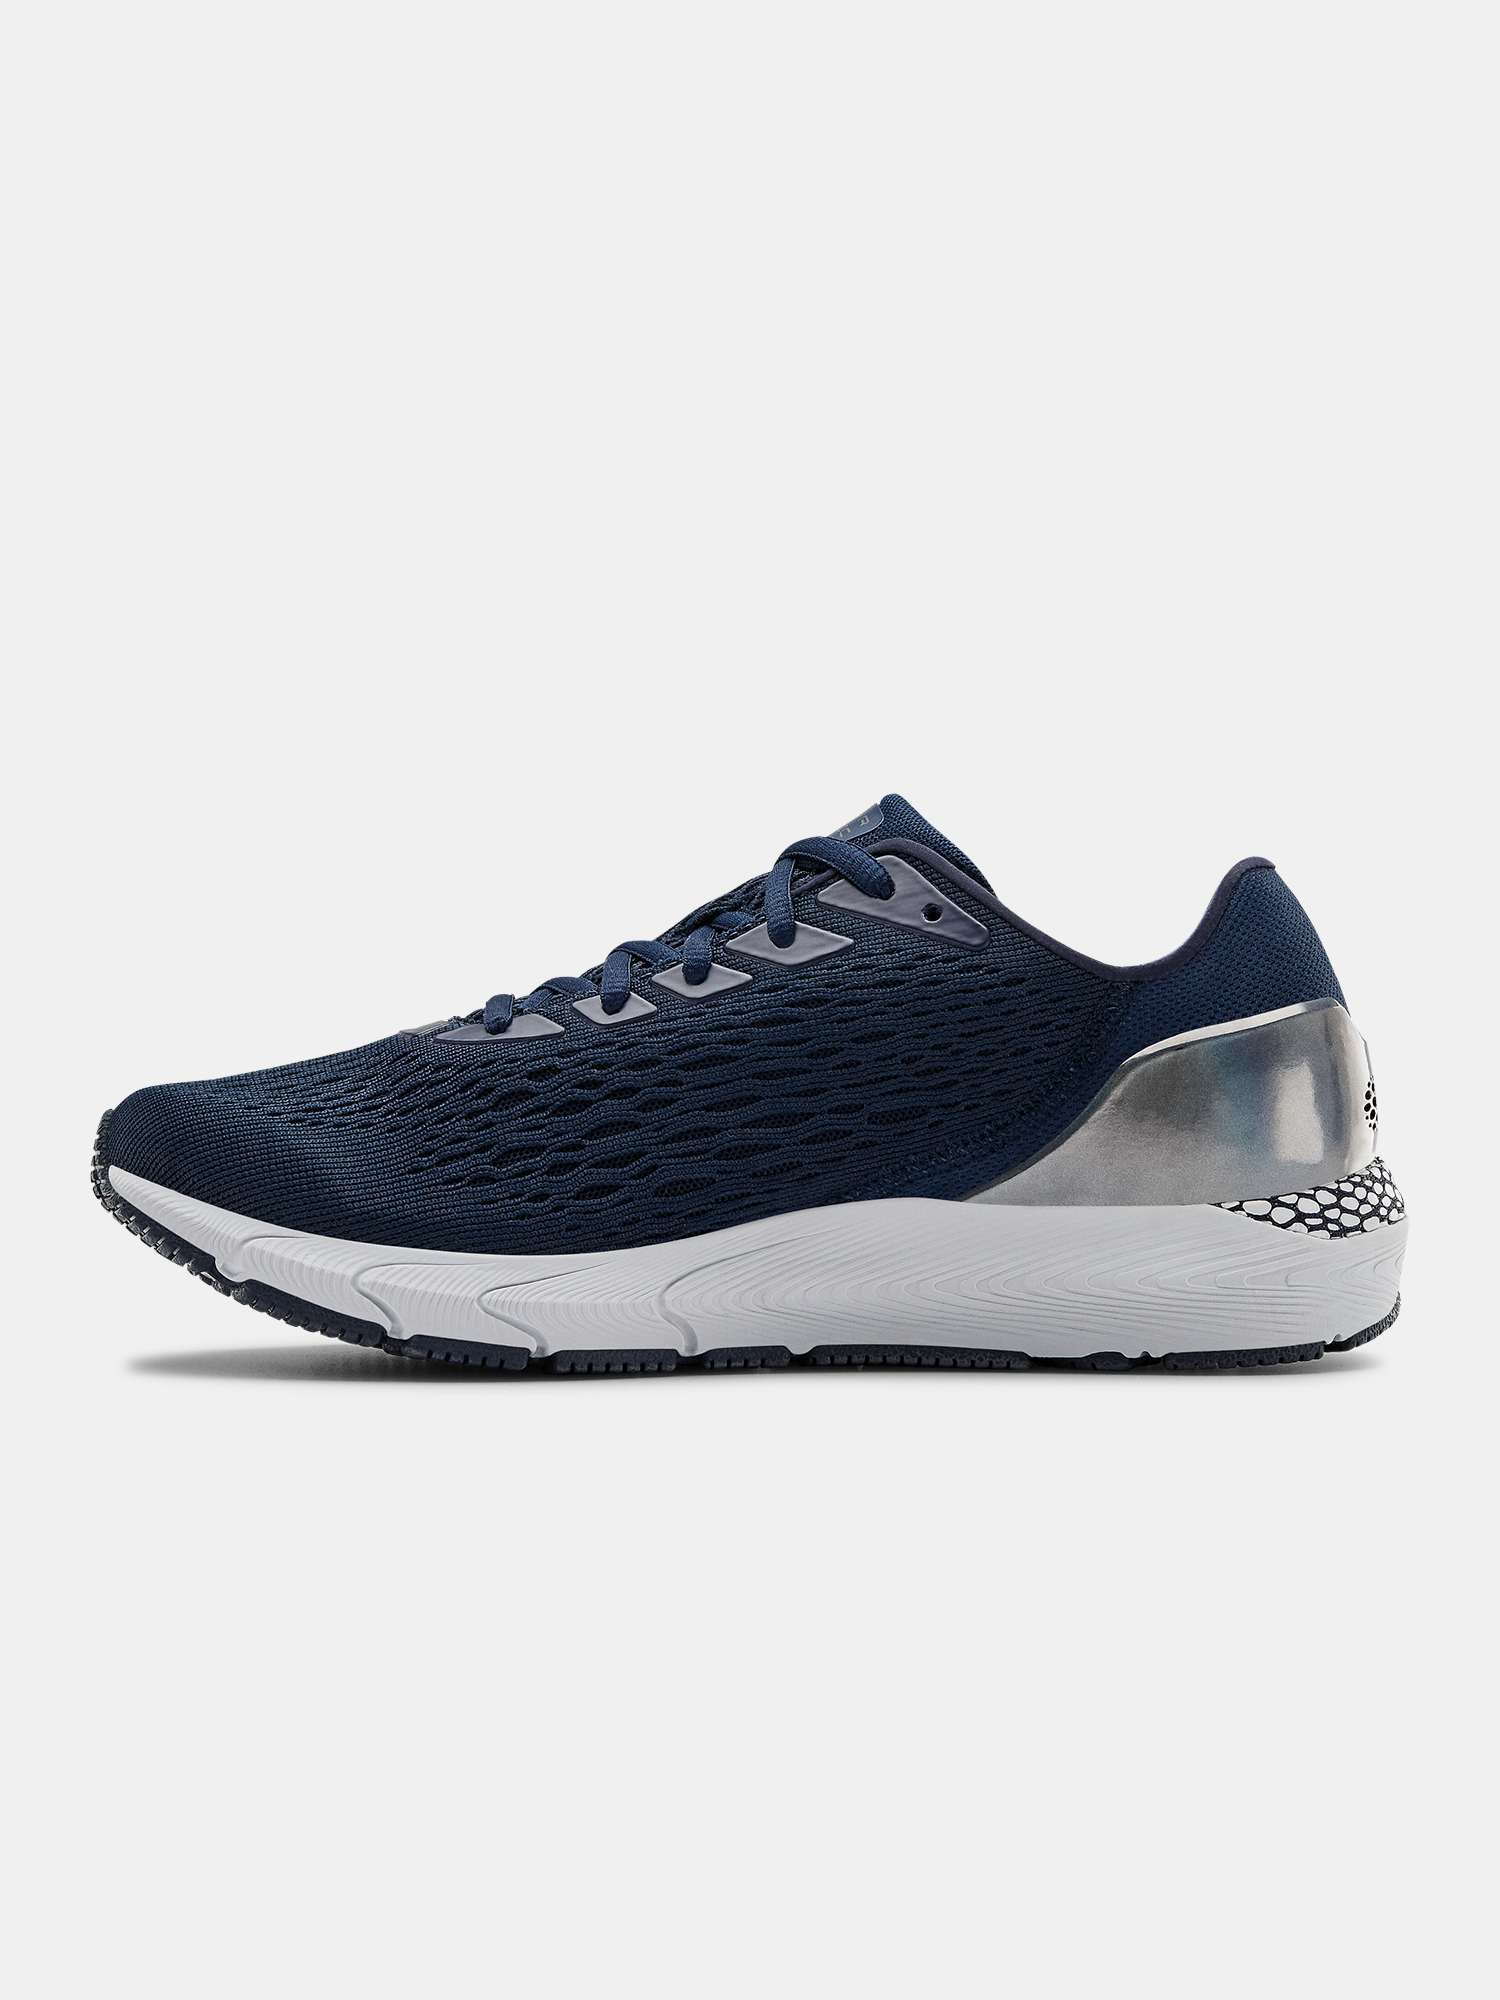 Boty Under Armour HOVR Sonic 3 MTLC-NVY (2)